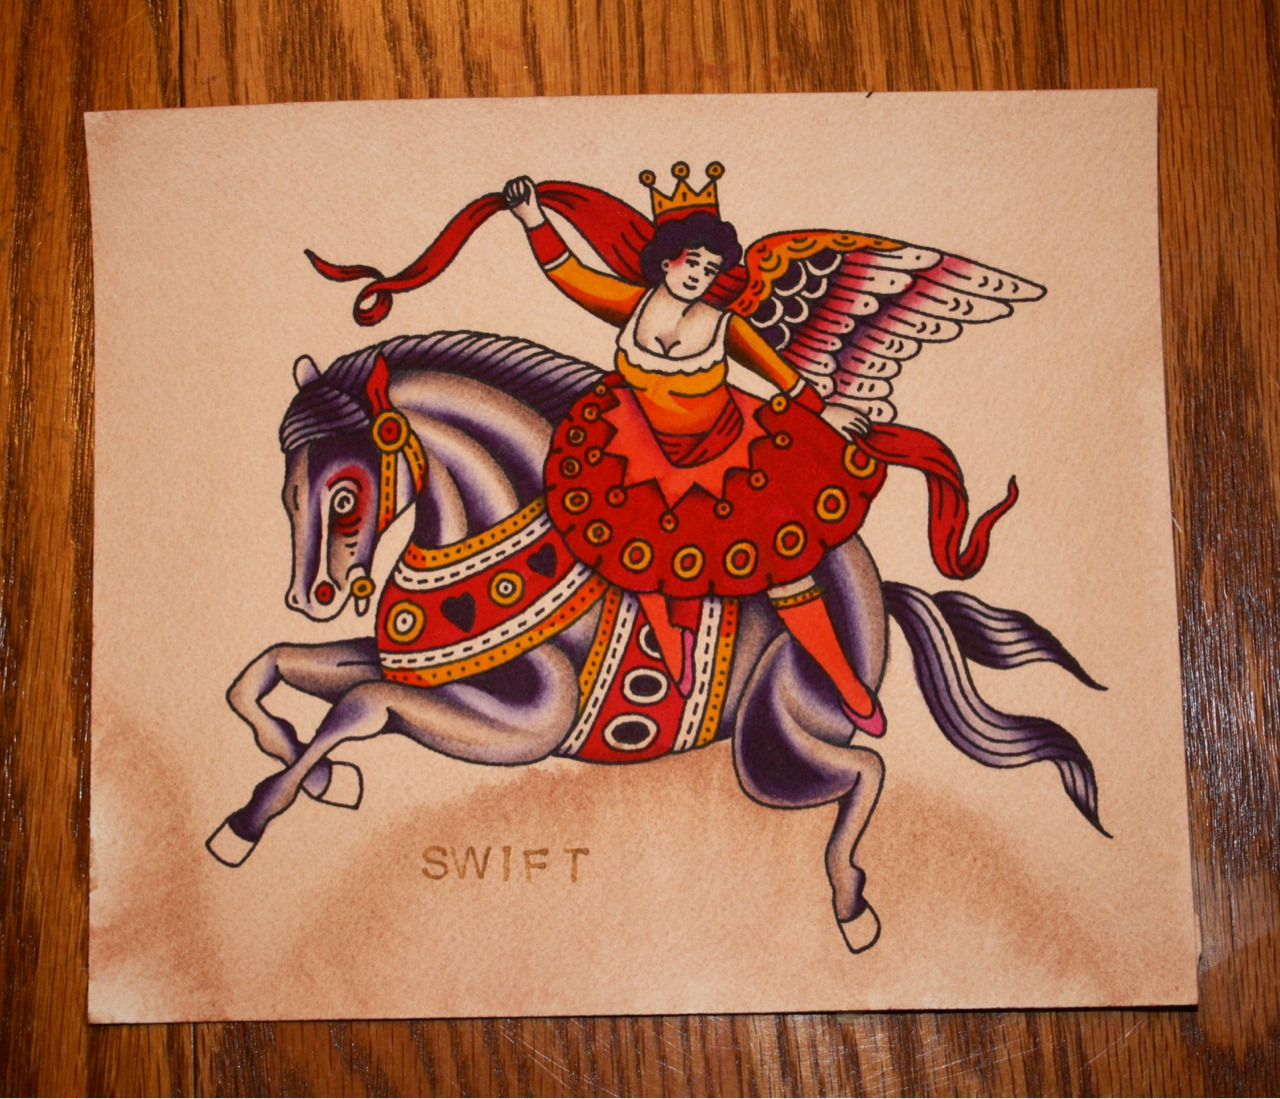 swiftdeathhorseclub:  I finished this little painting this morning. It is FOR SALE.. Email me if you're interested, thank you very much. ShaneThomasSwift@gmail.com